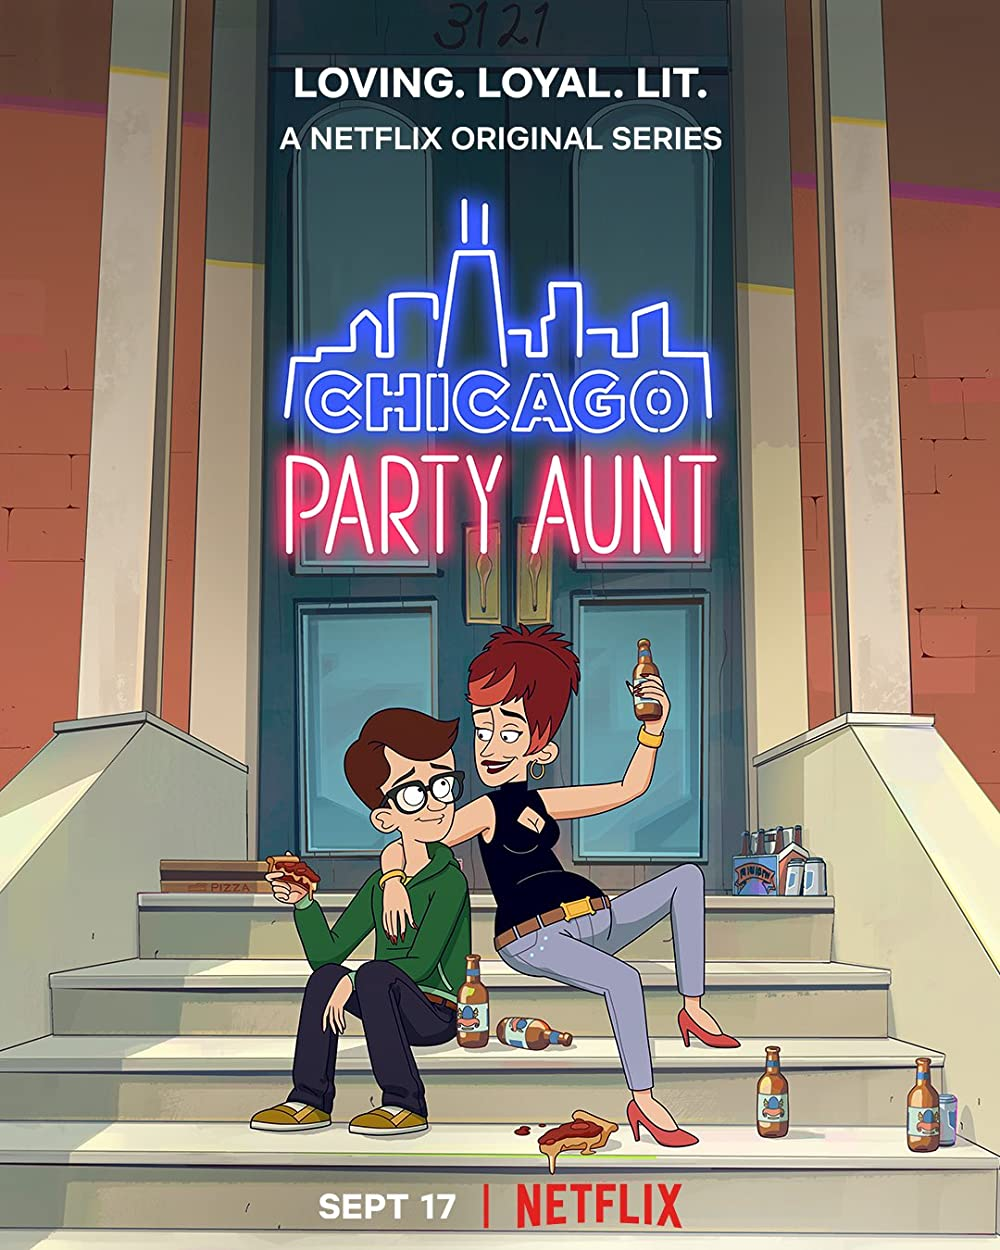 Chicago Party Aunt 2021 S01 Hindi NF Original Complete Web Series 1080p HDRip 2.81GB Download